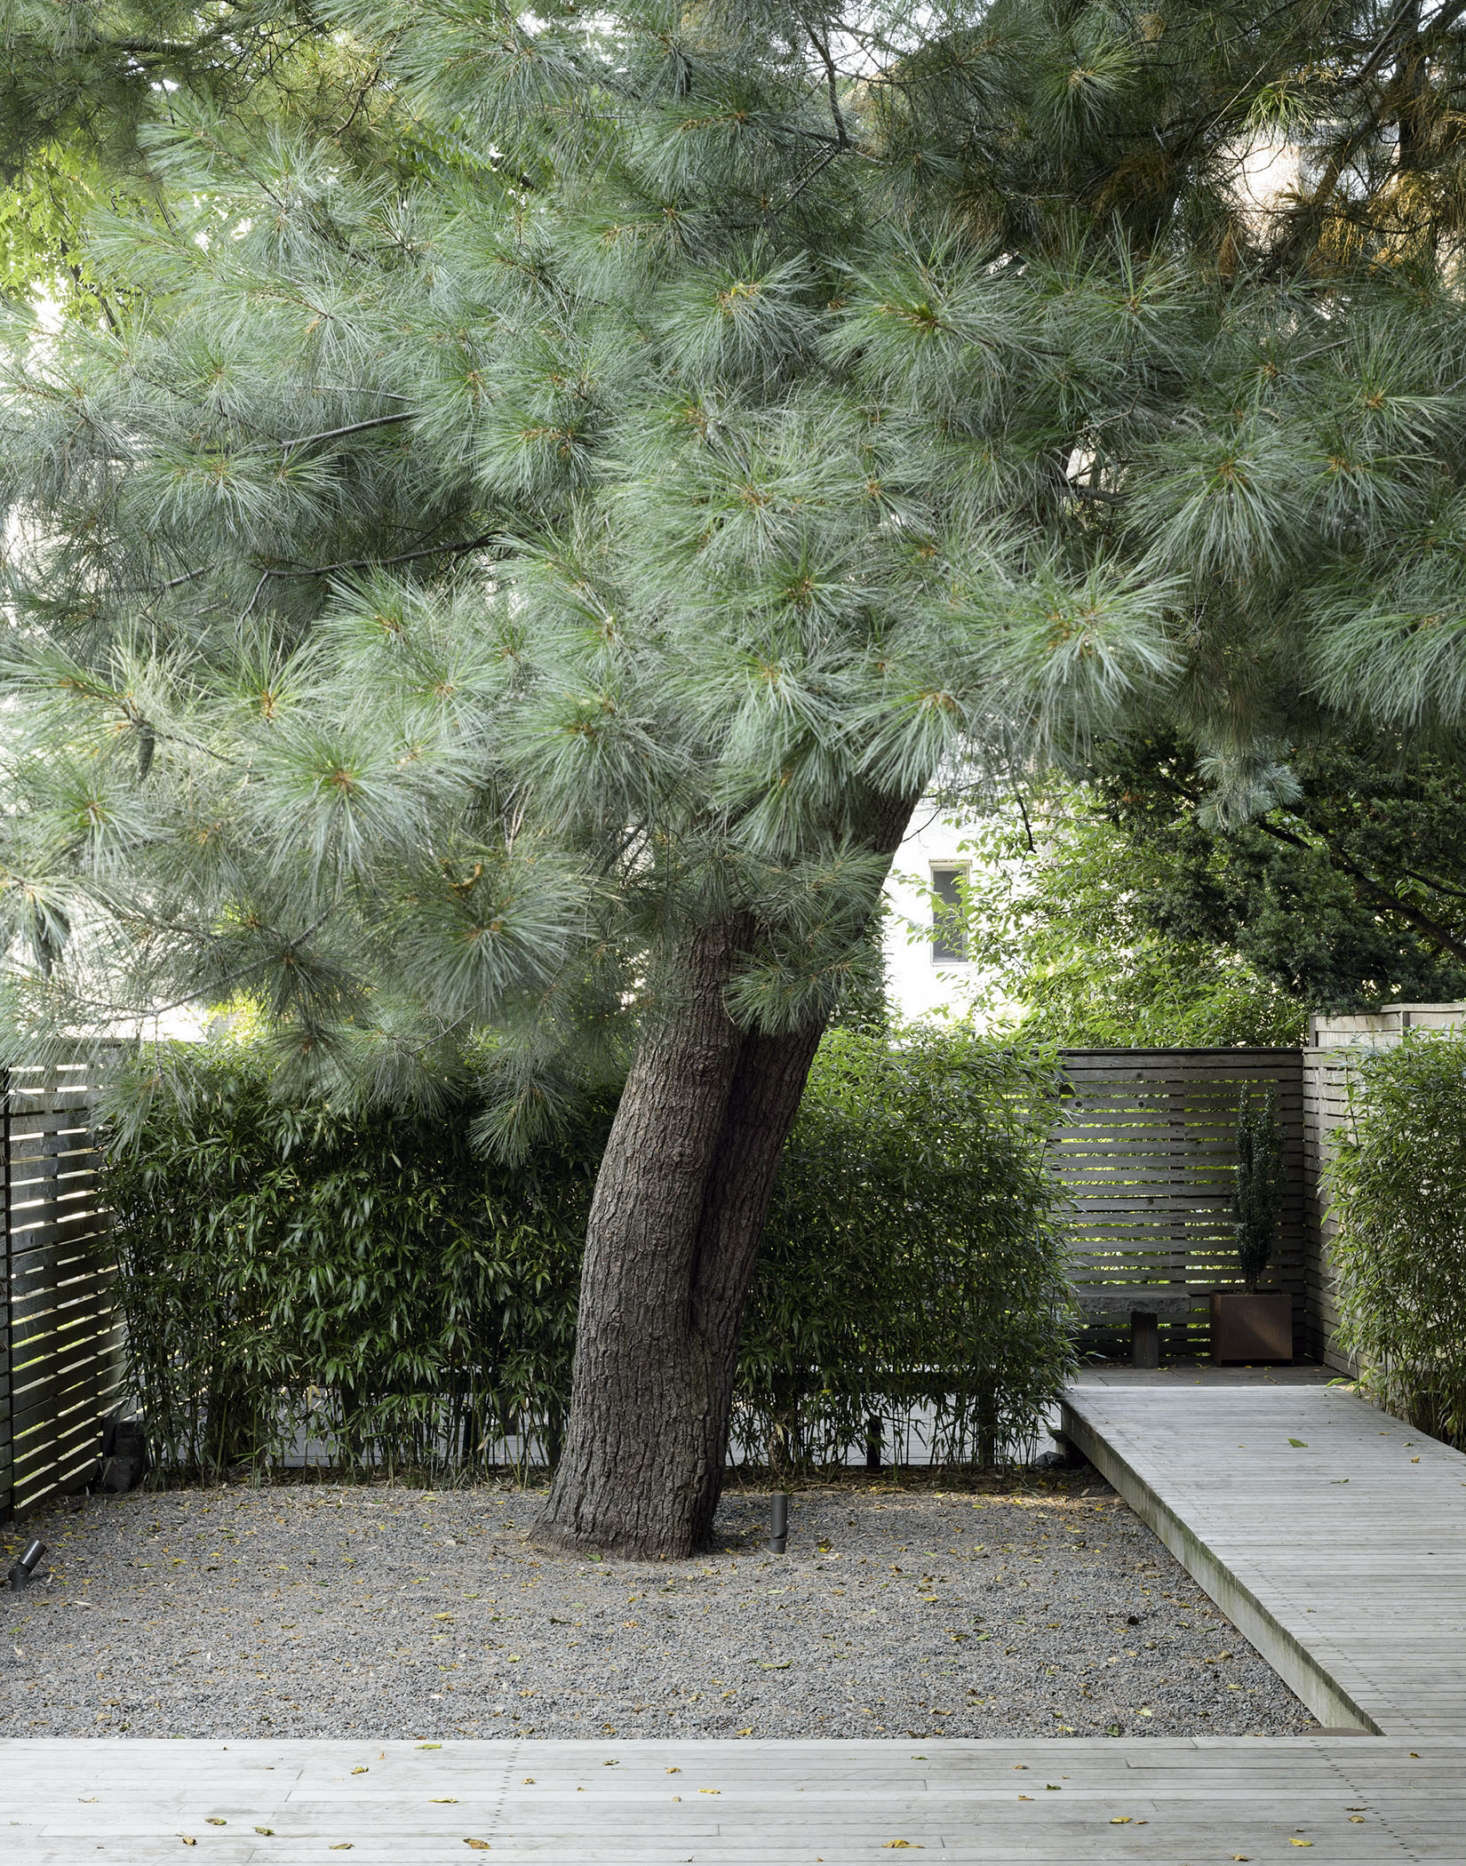 An eastern white pine tree draws the eye away from the neighbors&#8